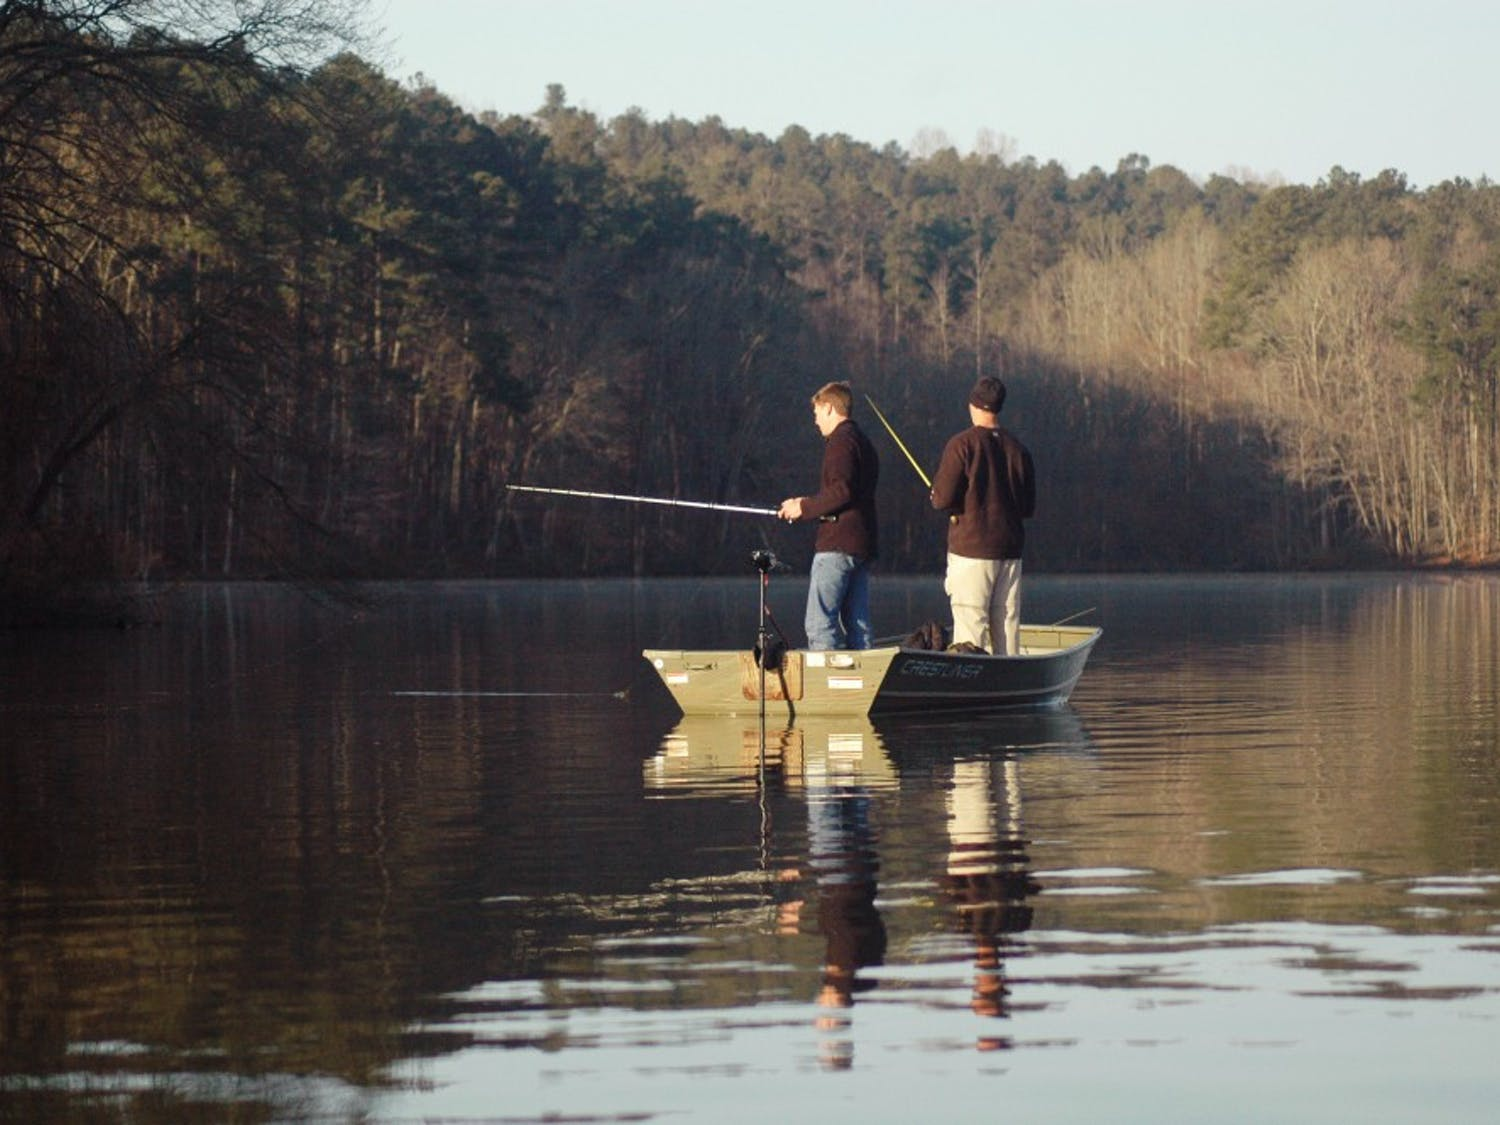 A duo of participants test their luck during the 3rd annual bass fishing competition between Duke and UNC. Eighteen fishers drove out to University Lake in Chapel Hill for the Sunday morning event.